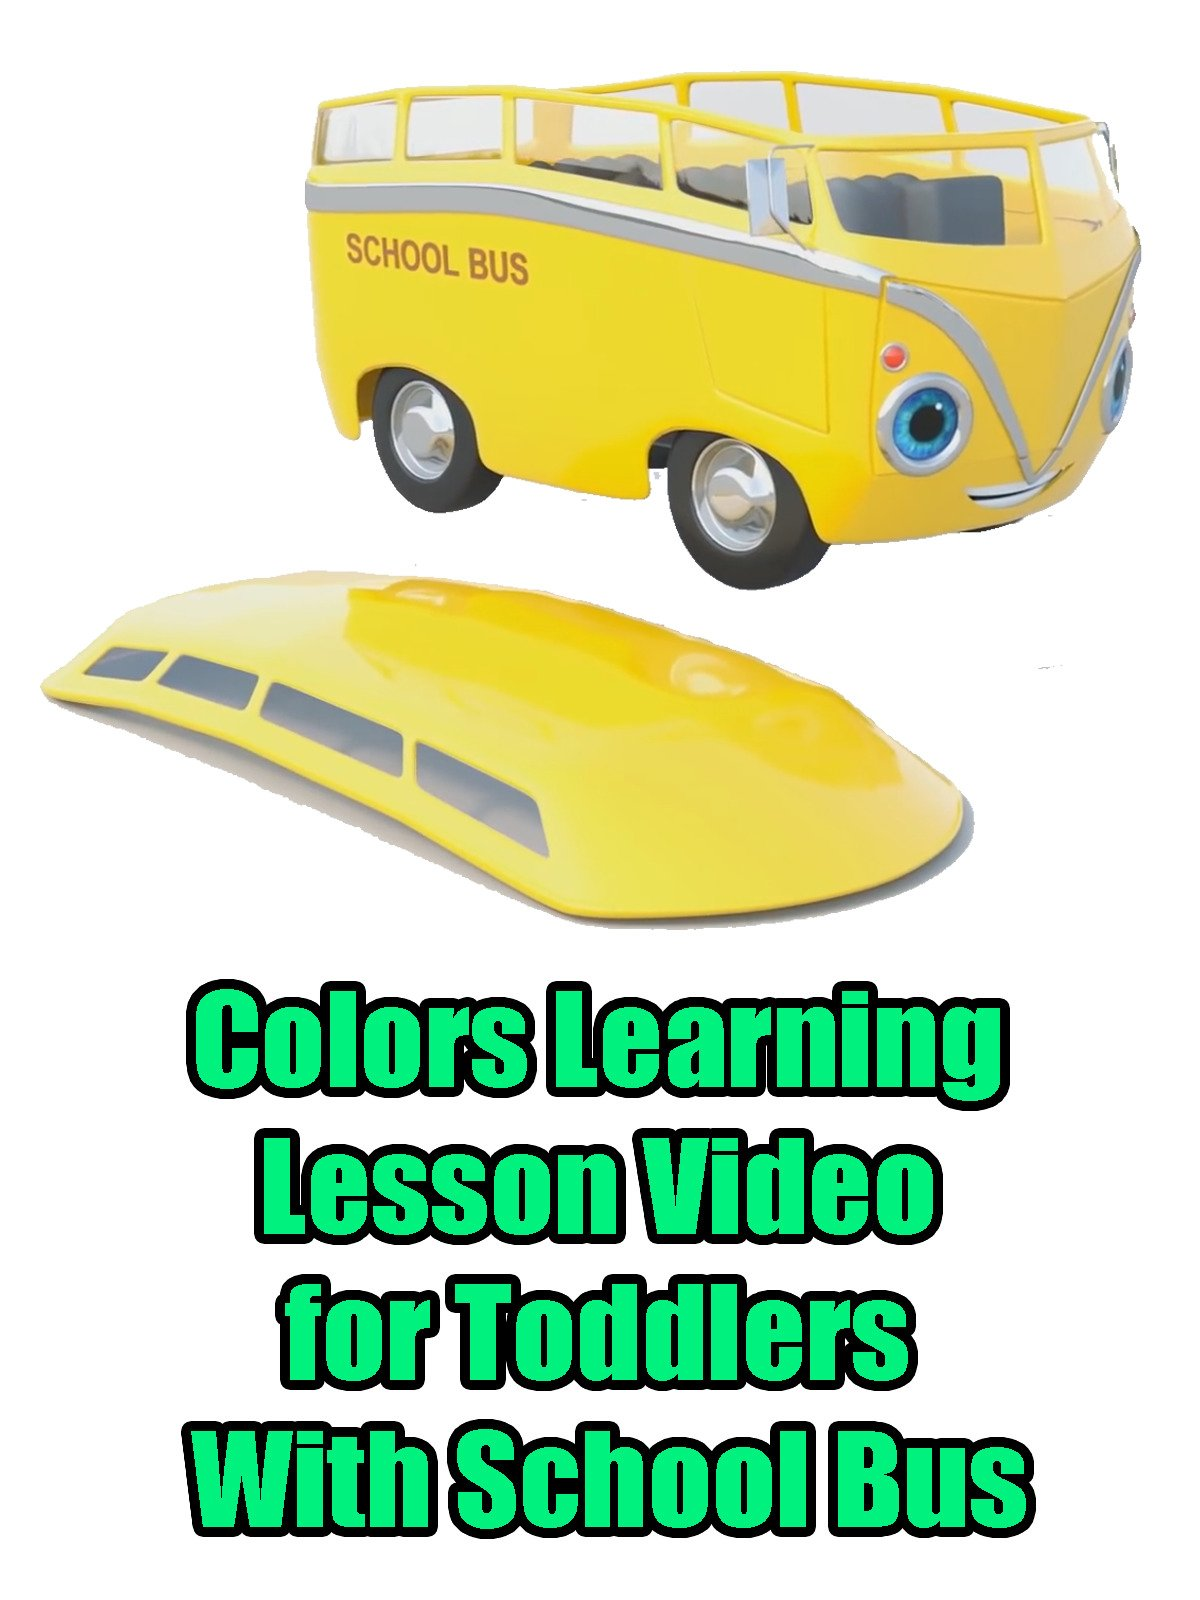 Colors Learning Lesson Video for Toddlers With School Bus